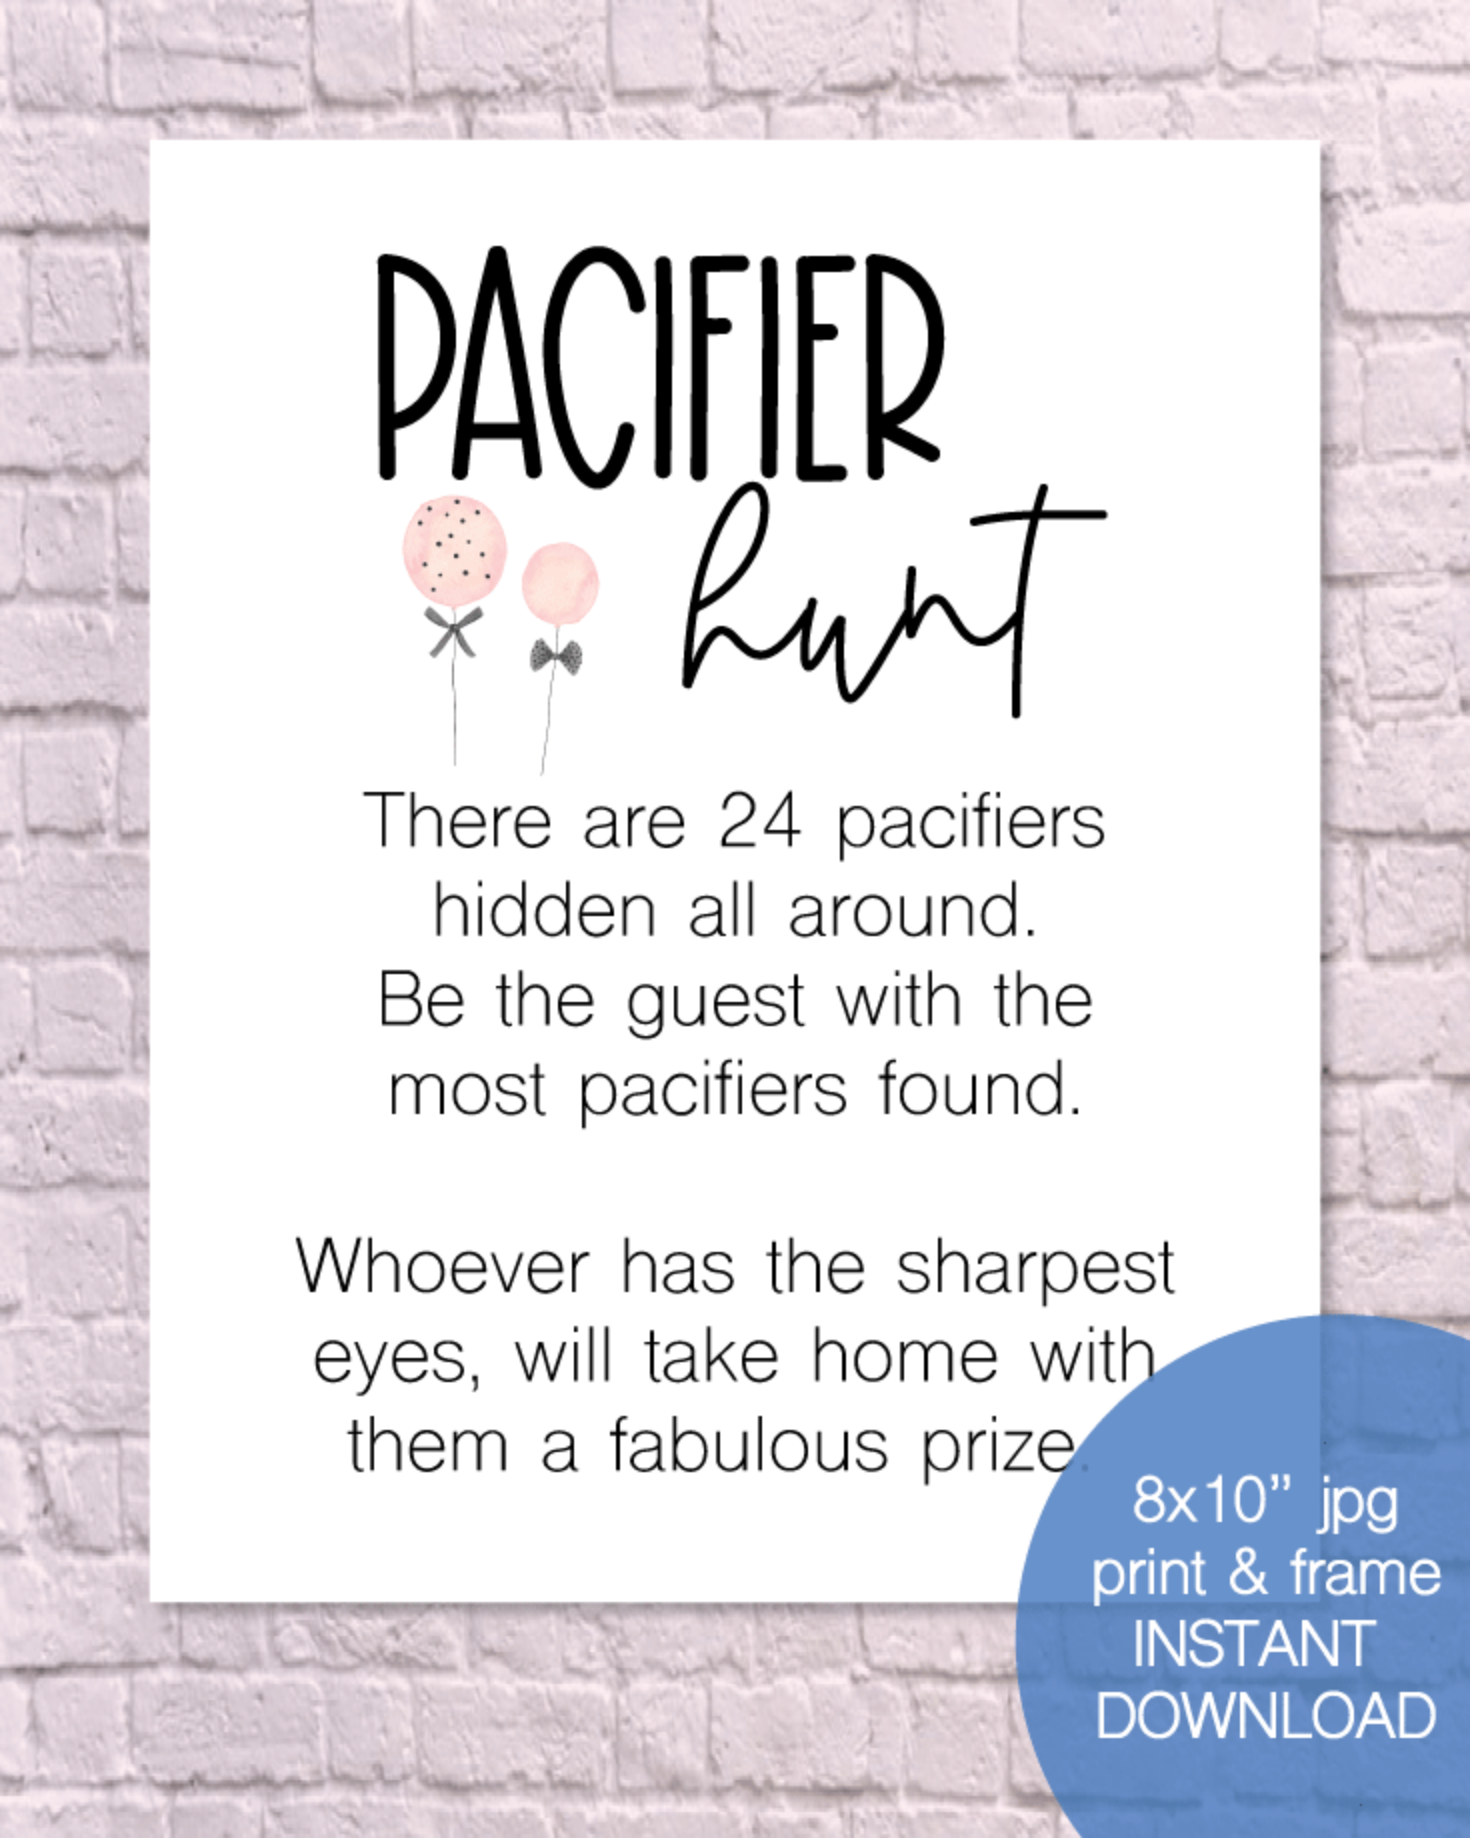 Printable Pacifier Hunt Baby Shower Game Sign - Pink Balloons